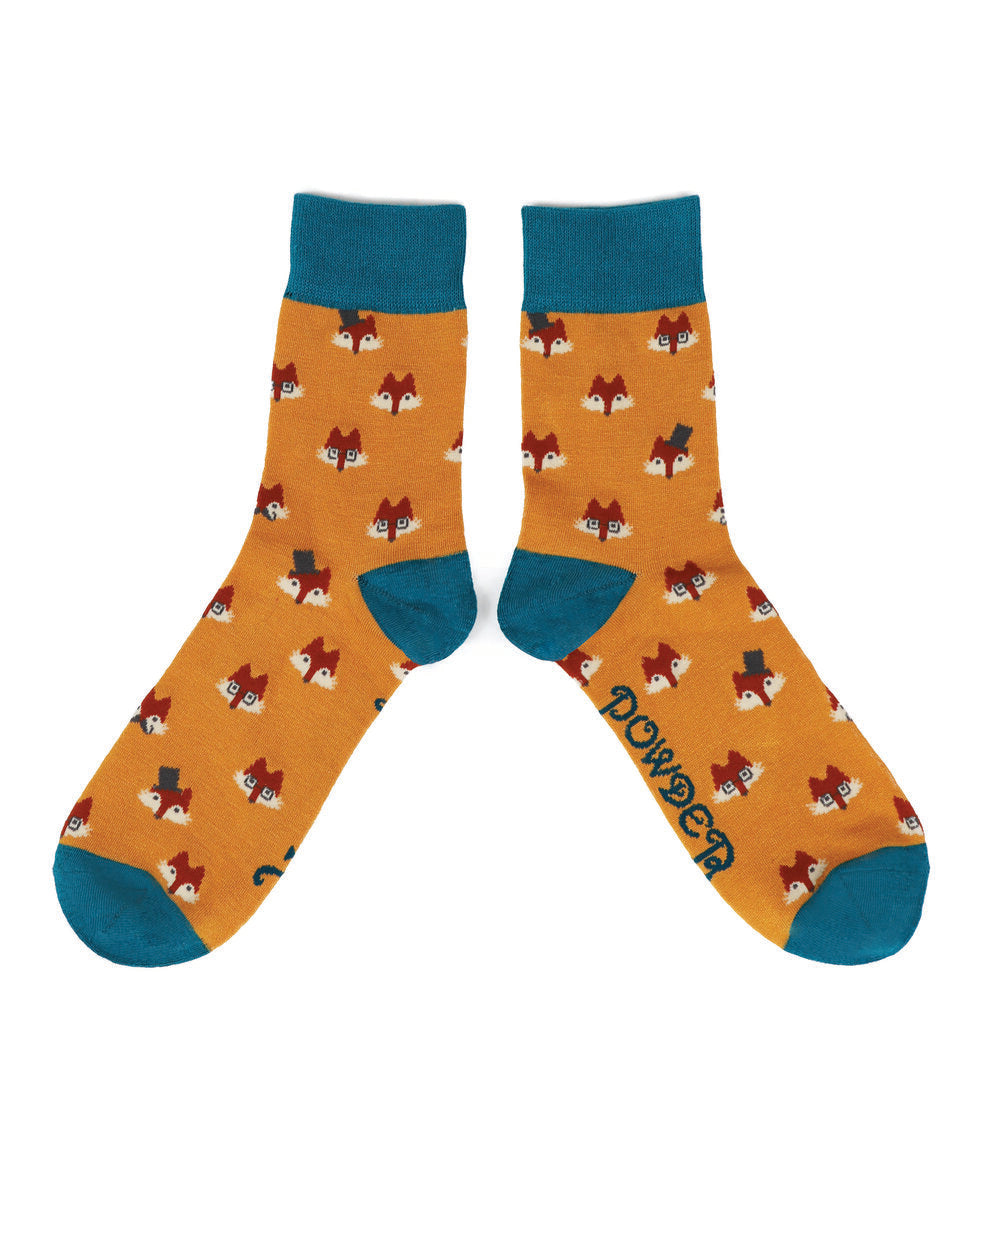 Mens Ankle Sock- Fox Faces